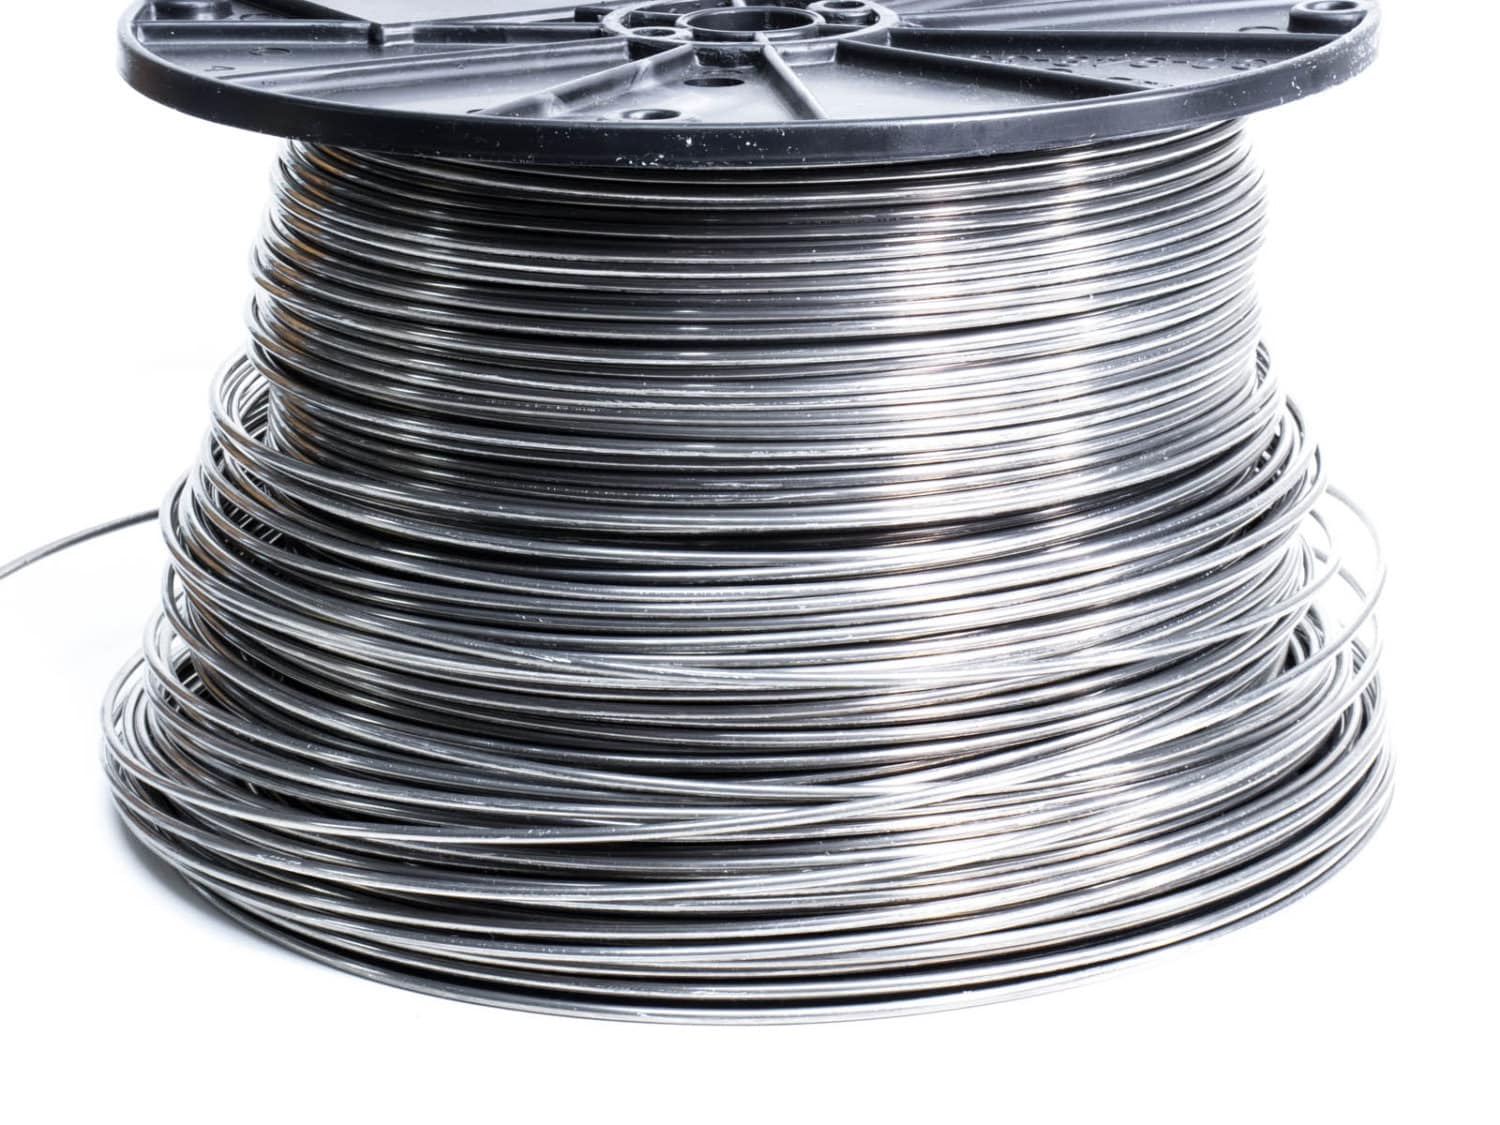 10 Feet of 12 Gauge Aluminum Wire- Zinc Free - Bird Toy Parts - DIY ...